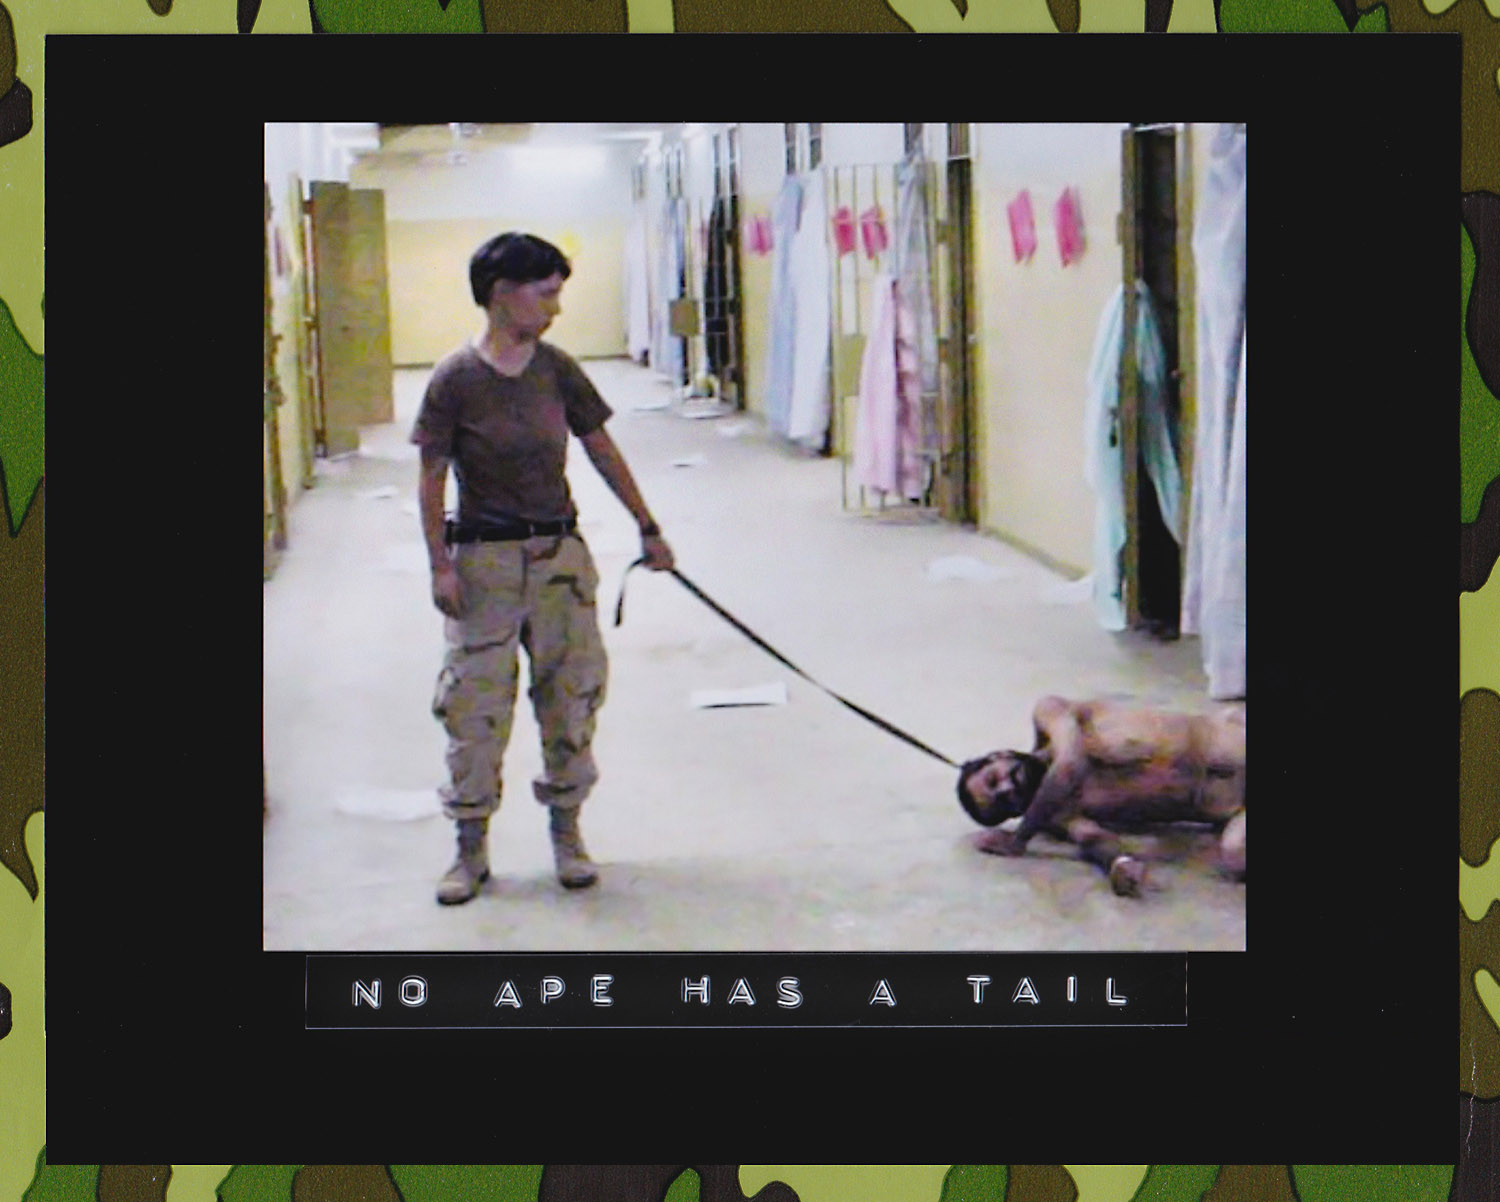 """U.S. Army photo from Abu Ghraib prison in Iraq showing Pvt. Lynndie England holding a leash attached to a prisoner collapsed on the floor, known to the guards as """"Gus."""" (Source: U.S. Army. Department of Defense)"""